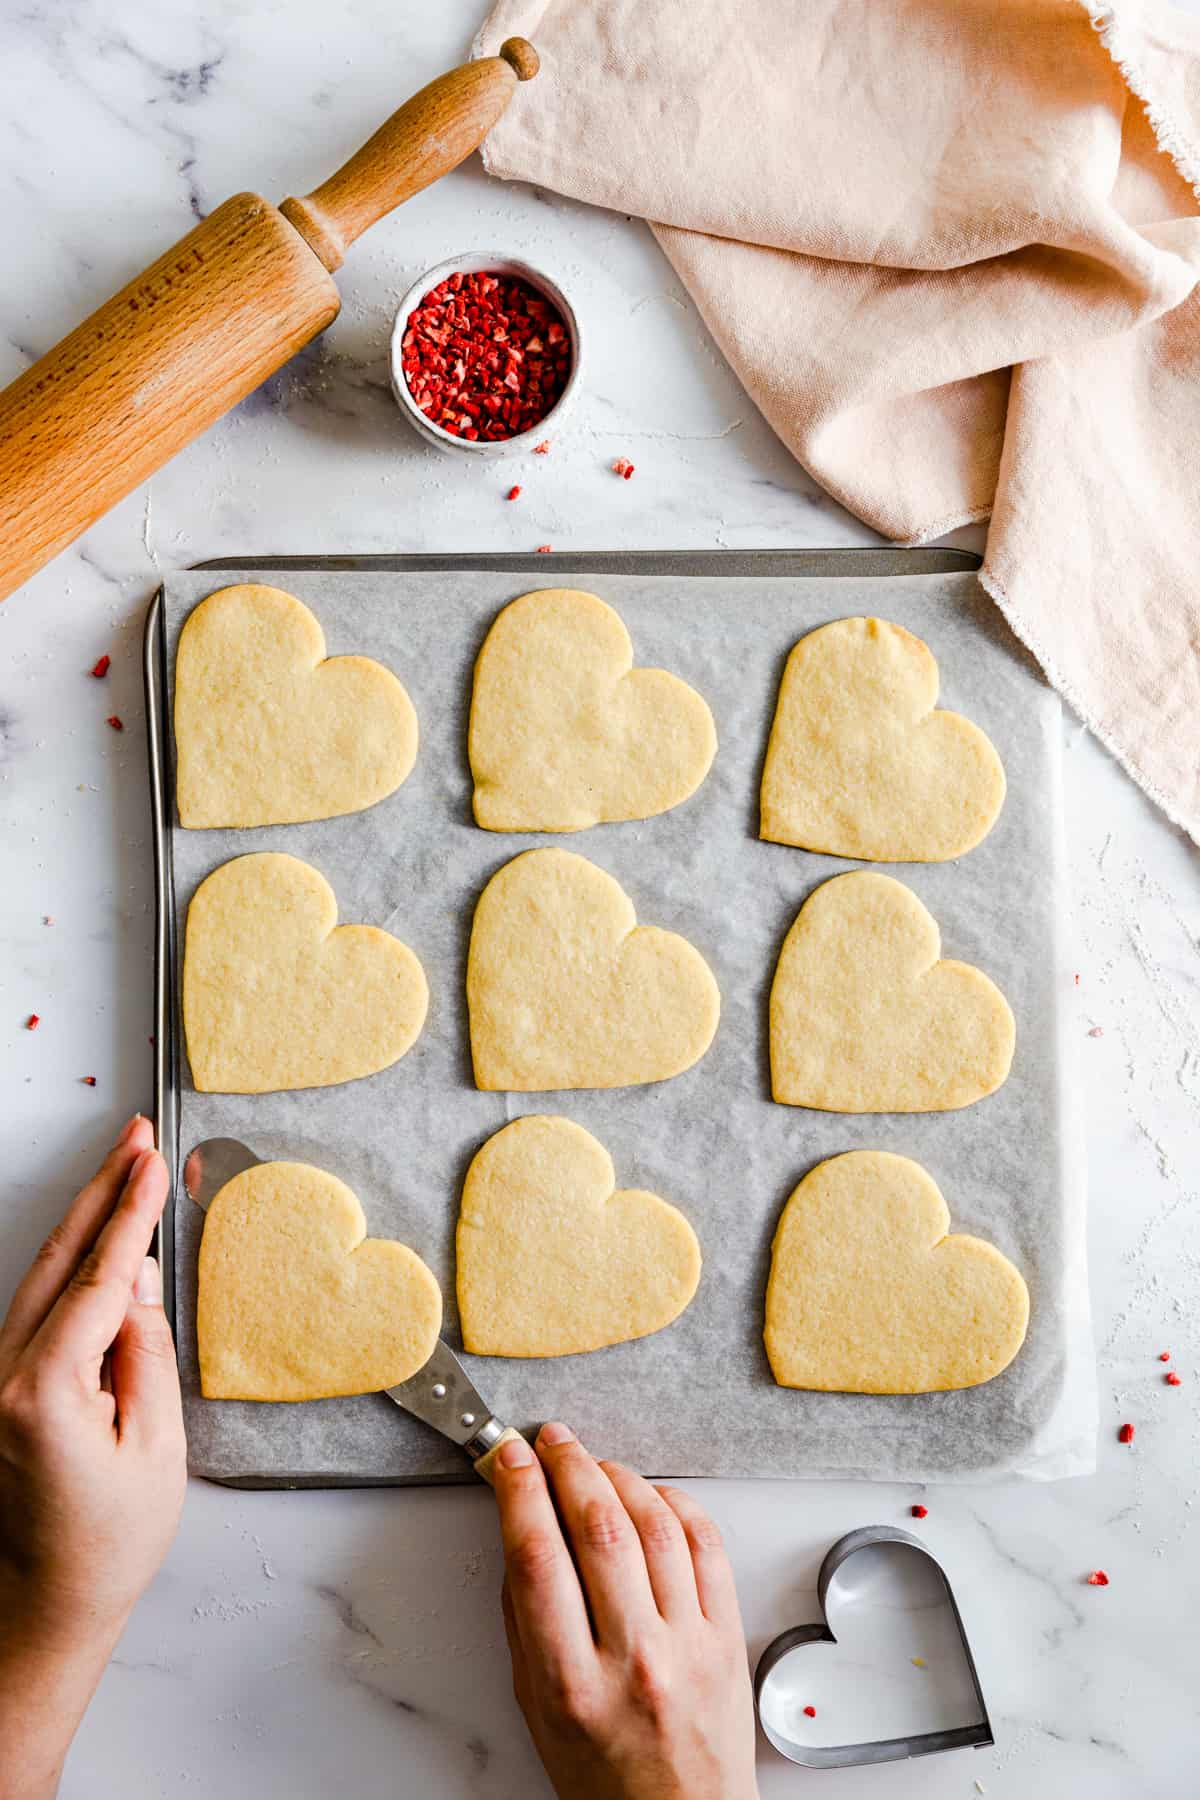 top view of a person removing a sugar cookie from baking tray